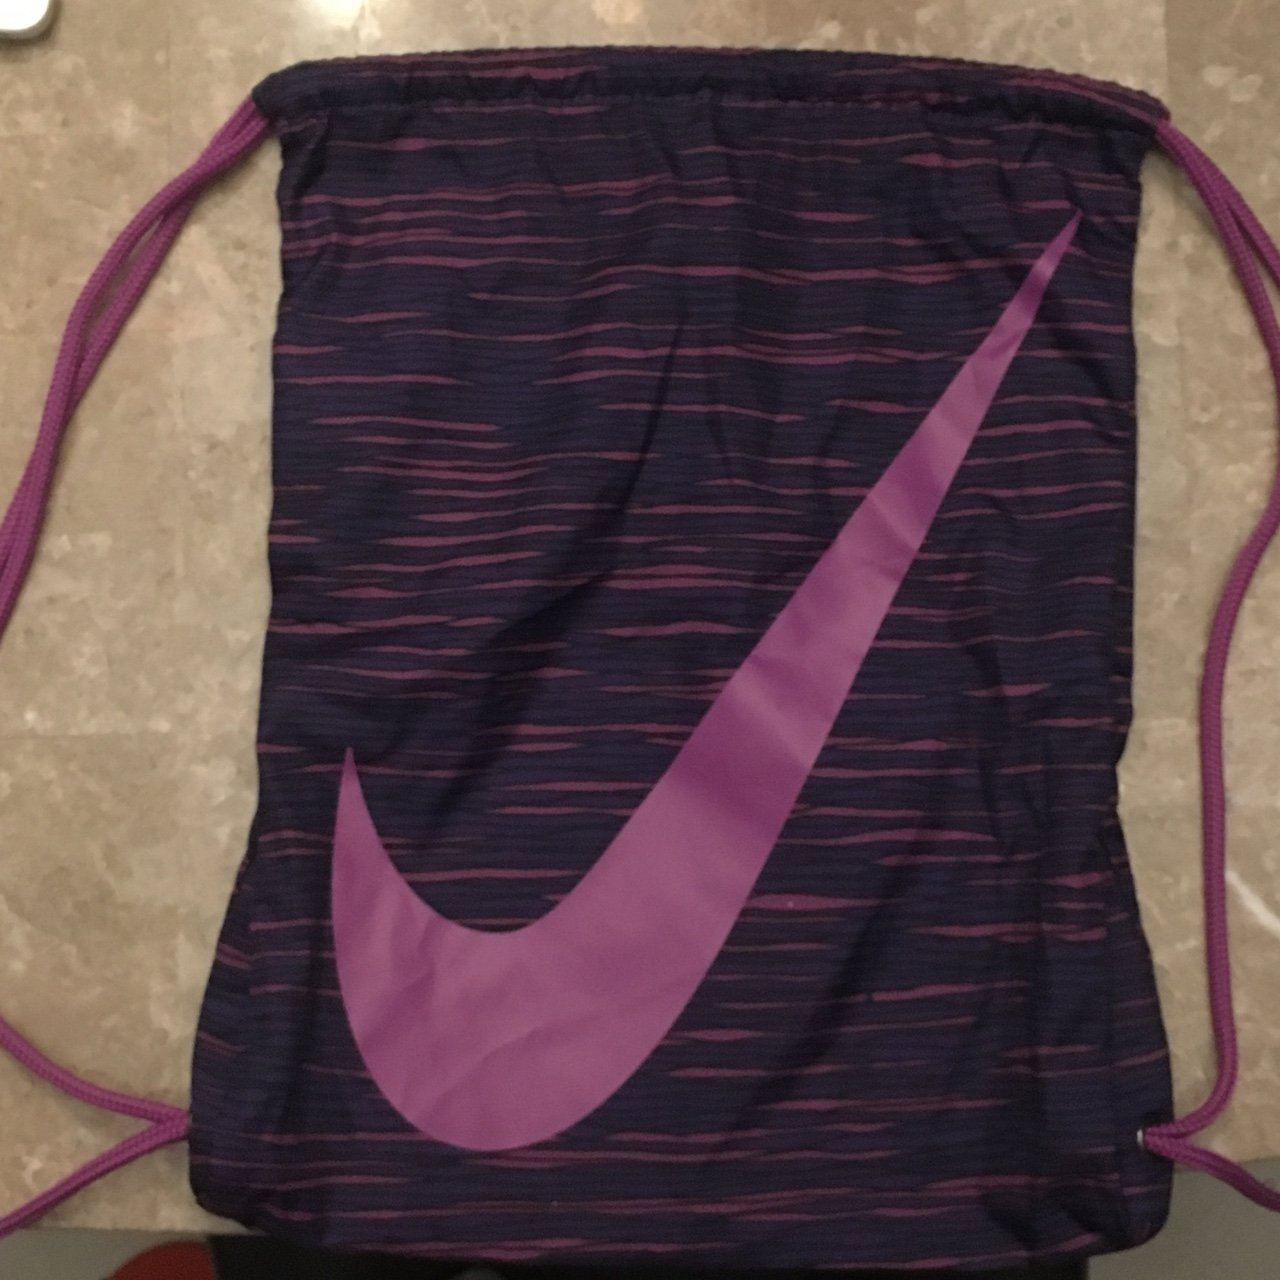 s lilia. 19 days ago. United States. purple nike string bag faf221c94946